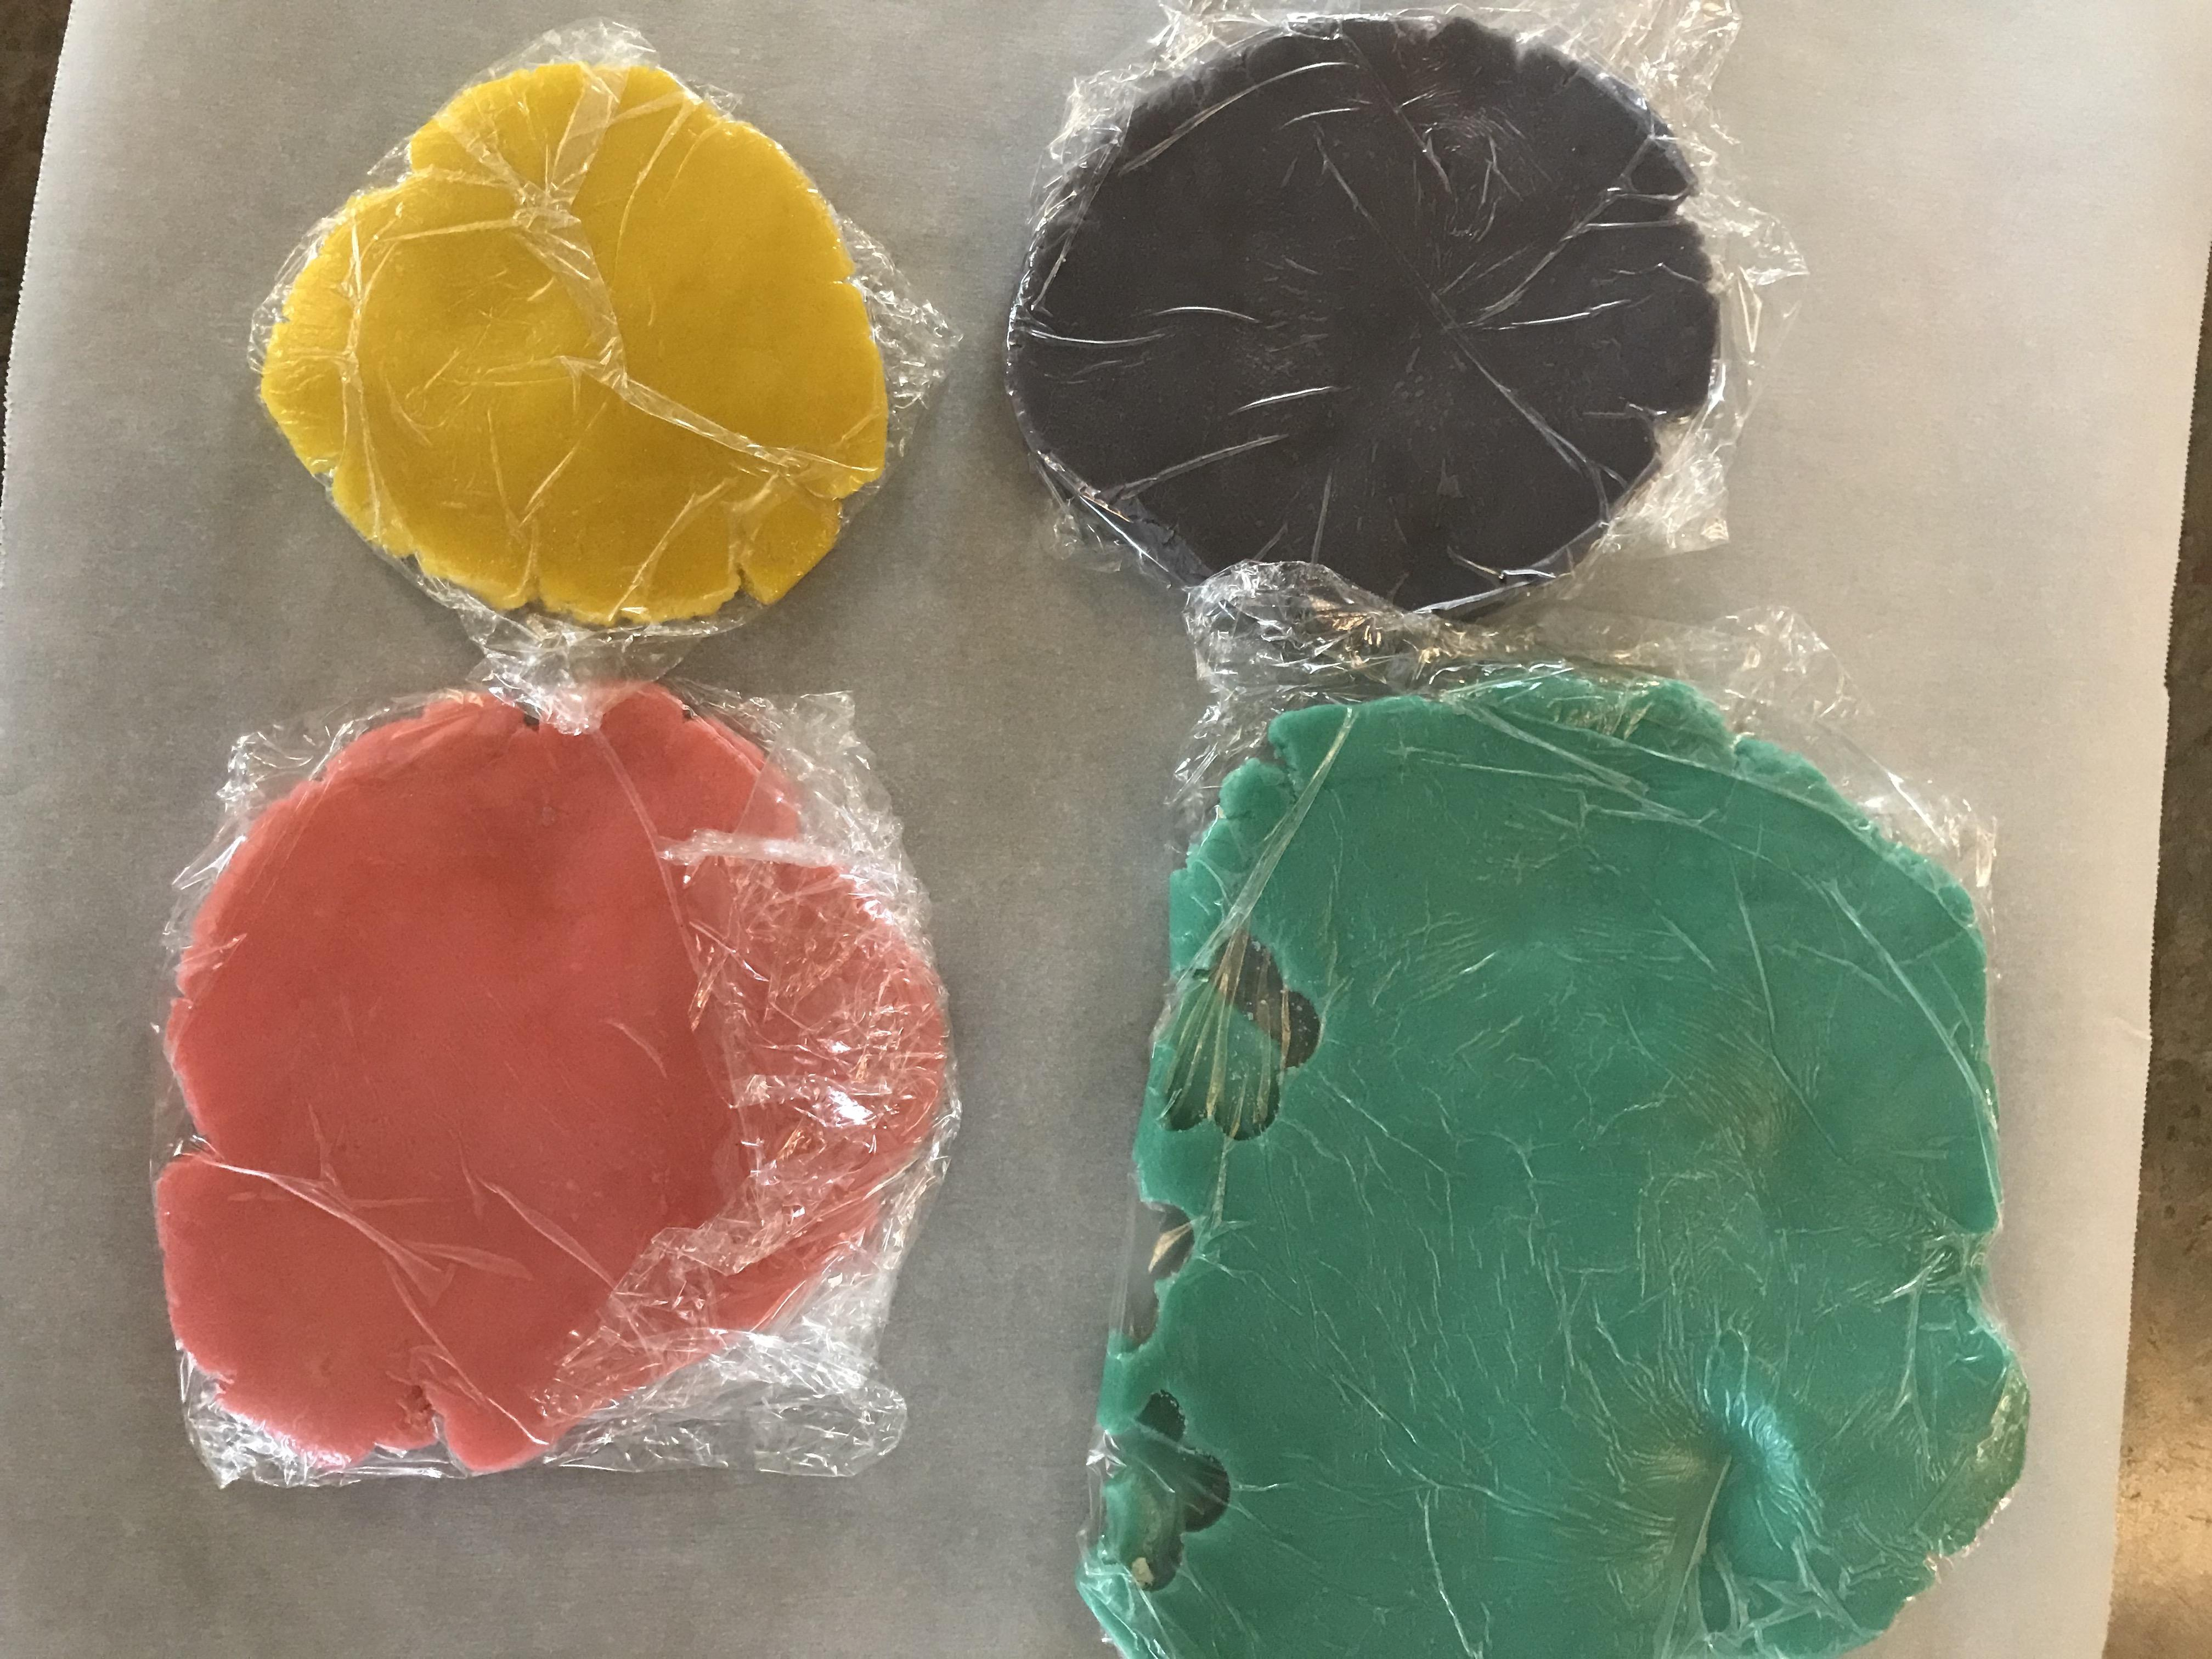 Mixing Color for Sparkling Flower Sugar Cookies